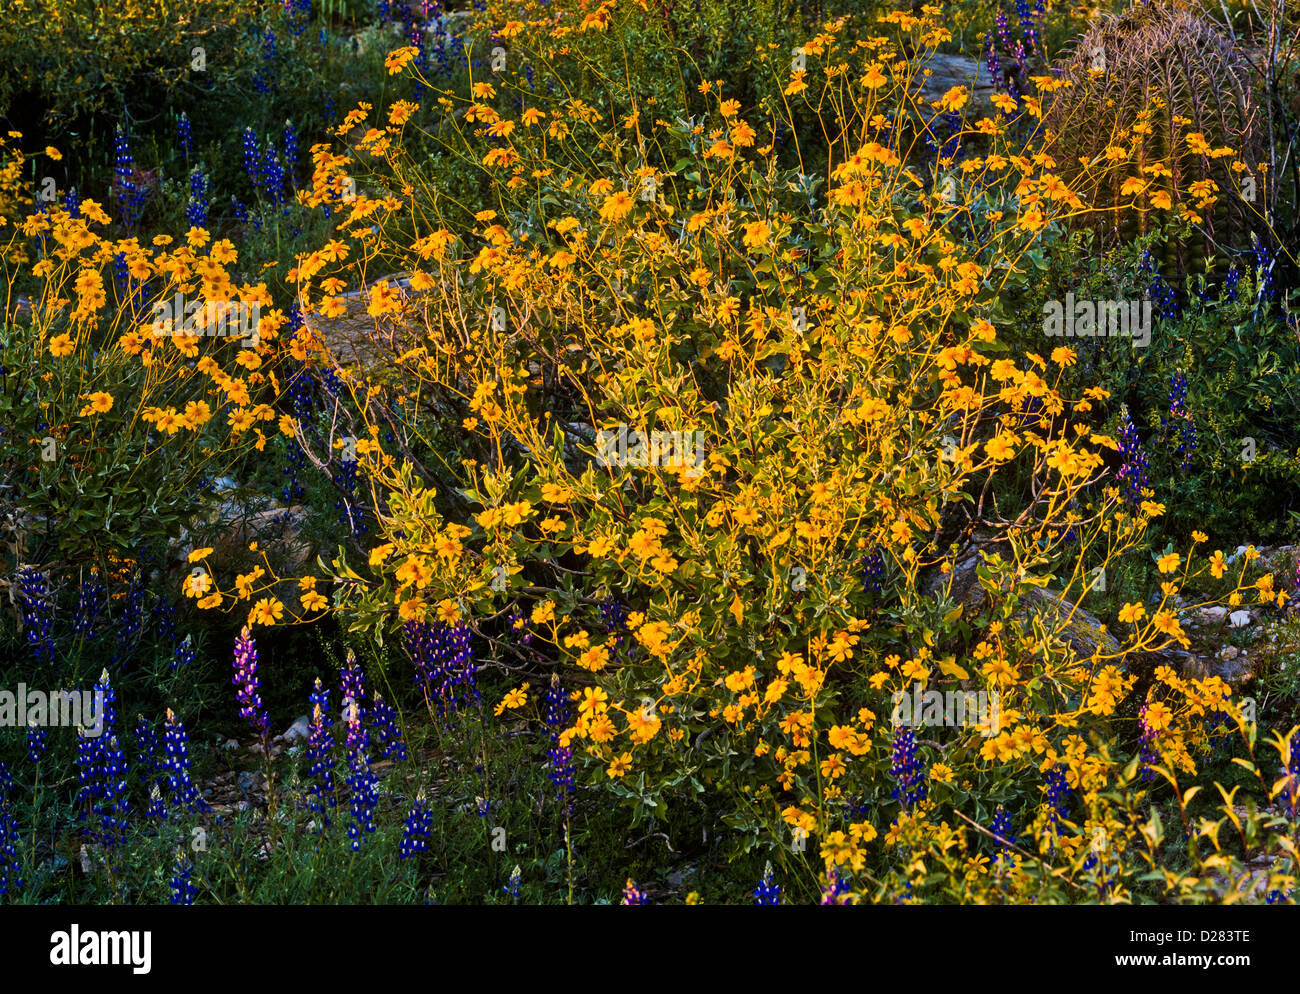 Arizona Desert Flowers Photographer Stockfotos Arizona Desert